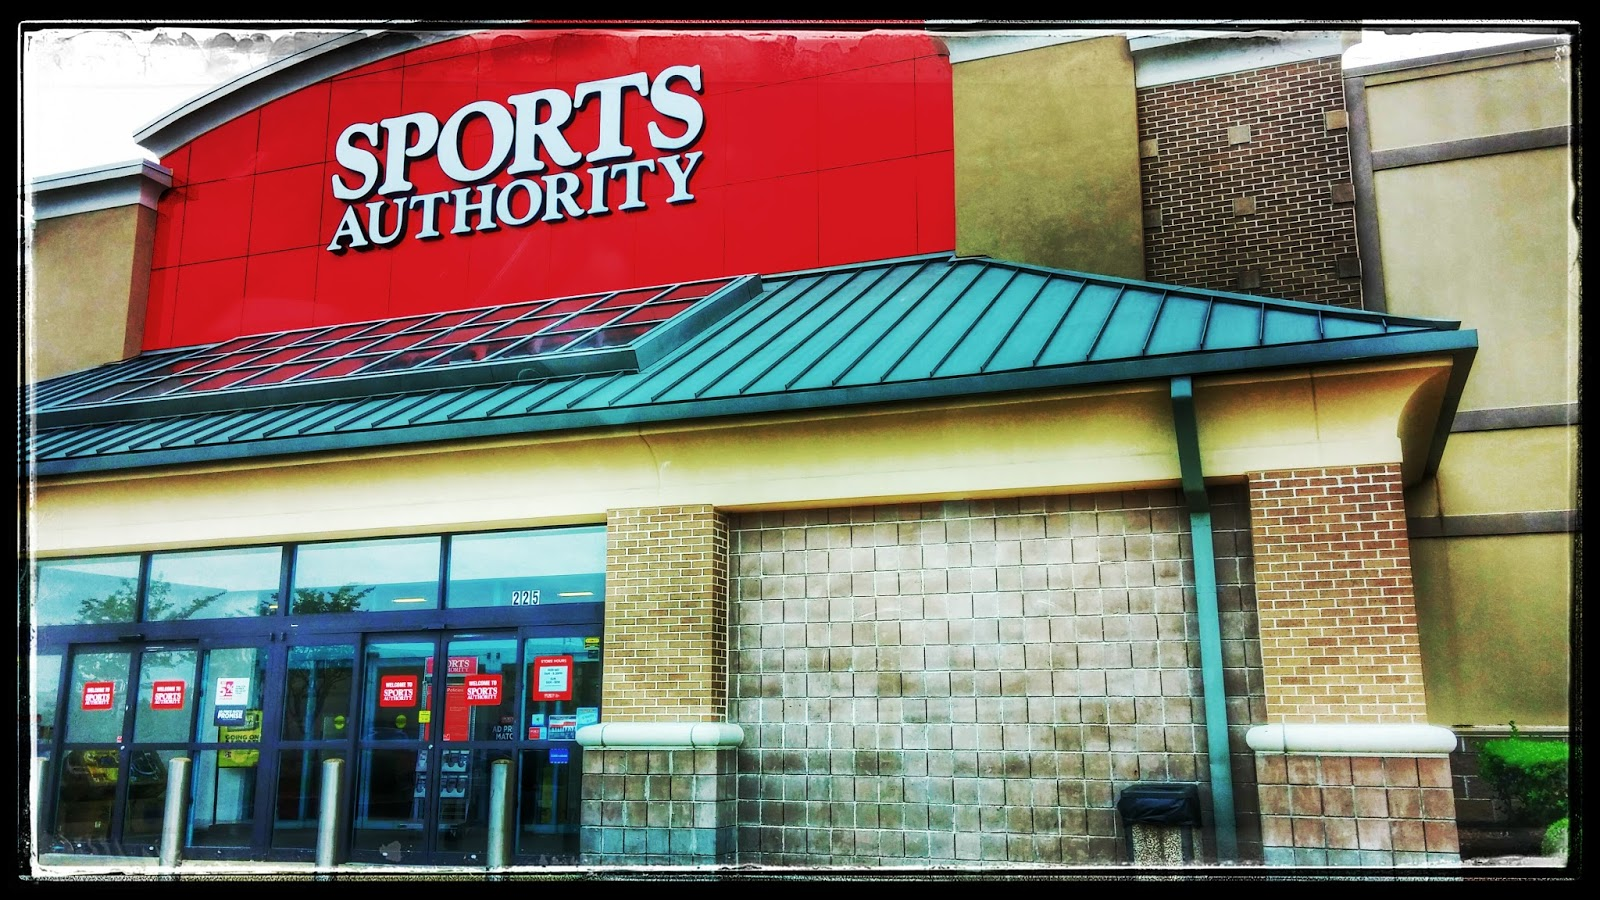 The Final Two Big Box Stores In South Lake Centre, Closest To Walmart, Are  Sports Authority And Office Depot. Either Early This Year Or Late Last  Year, ...